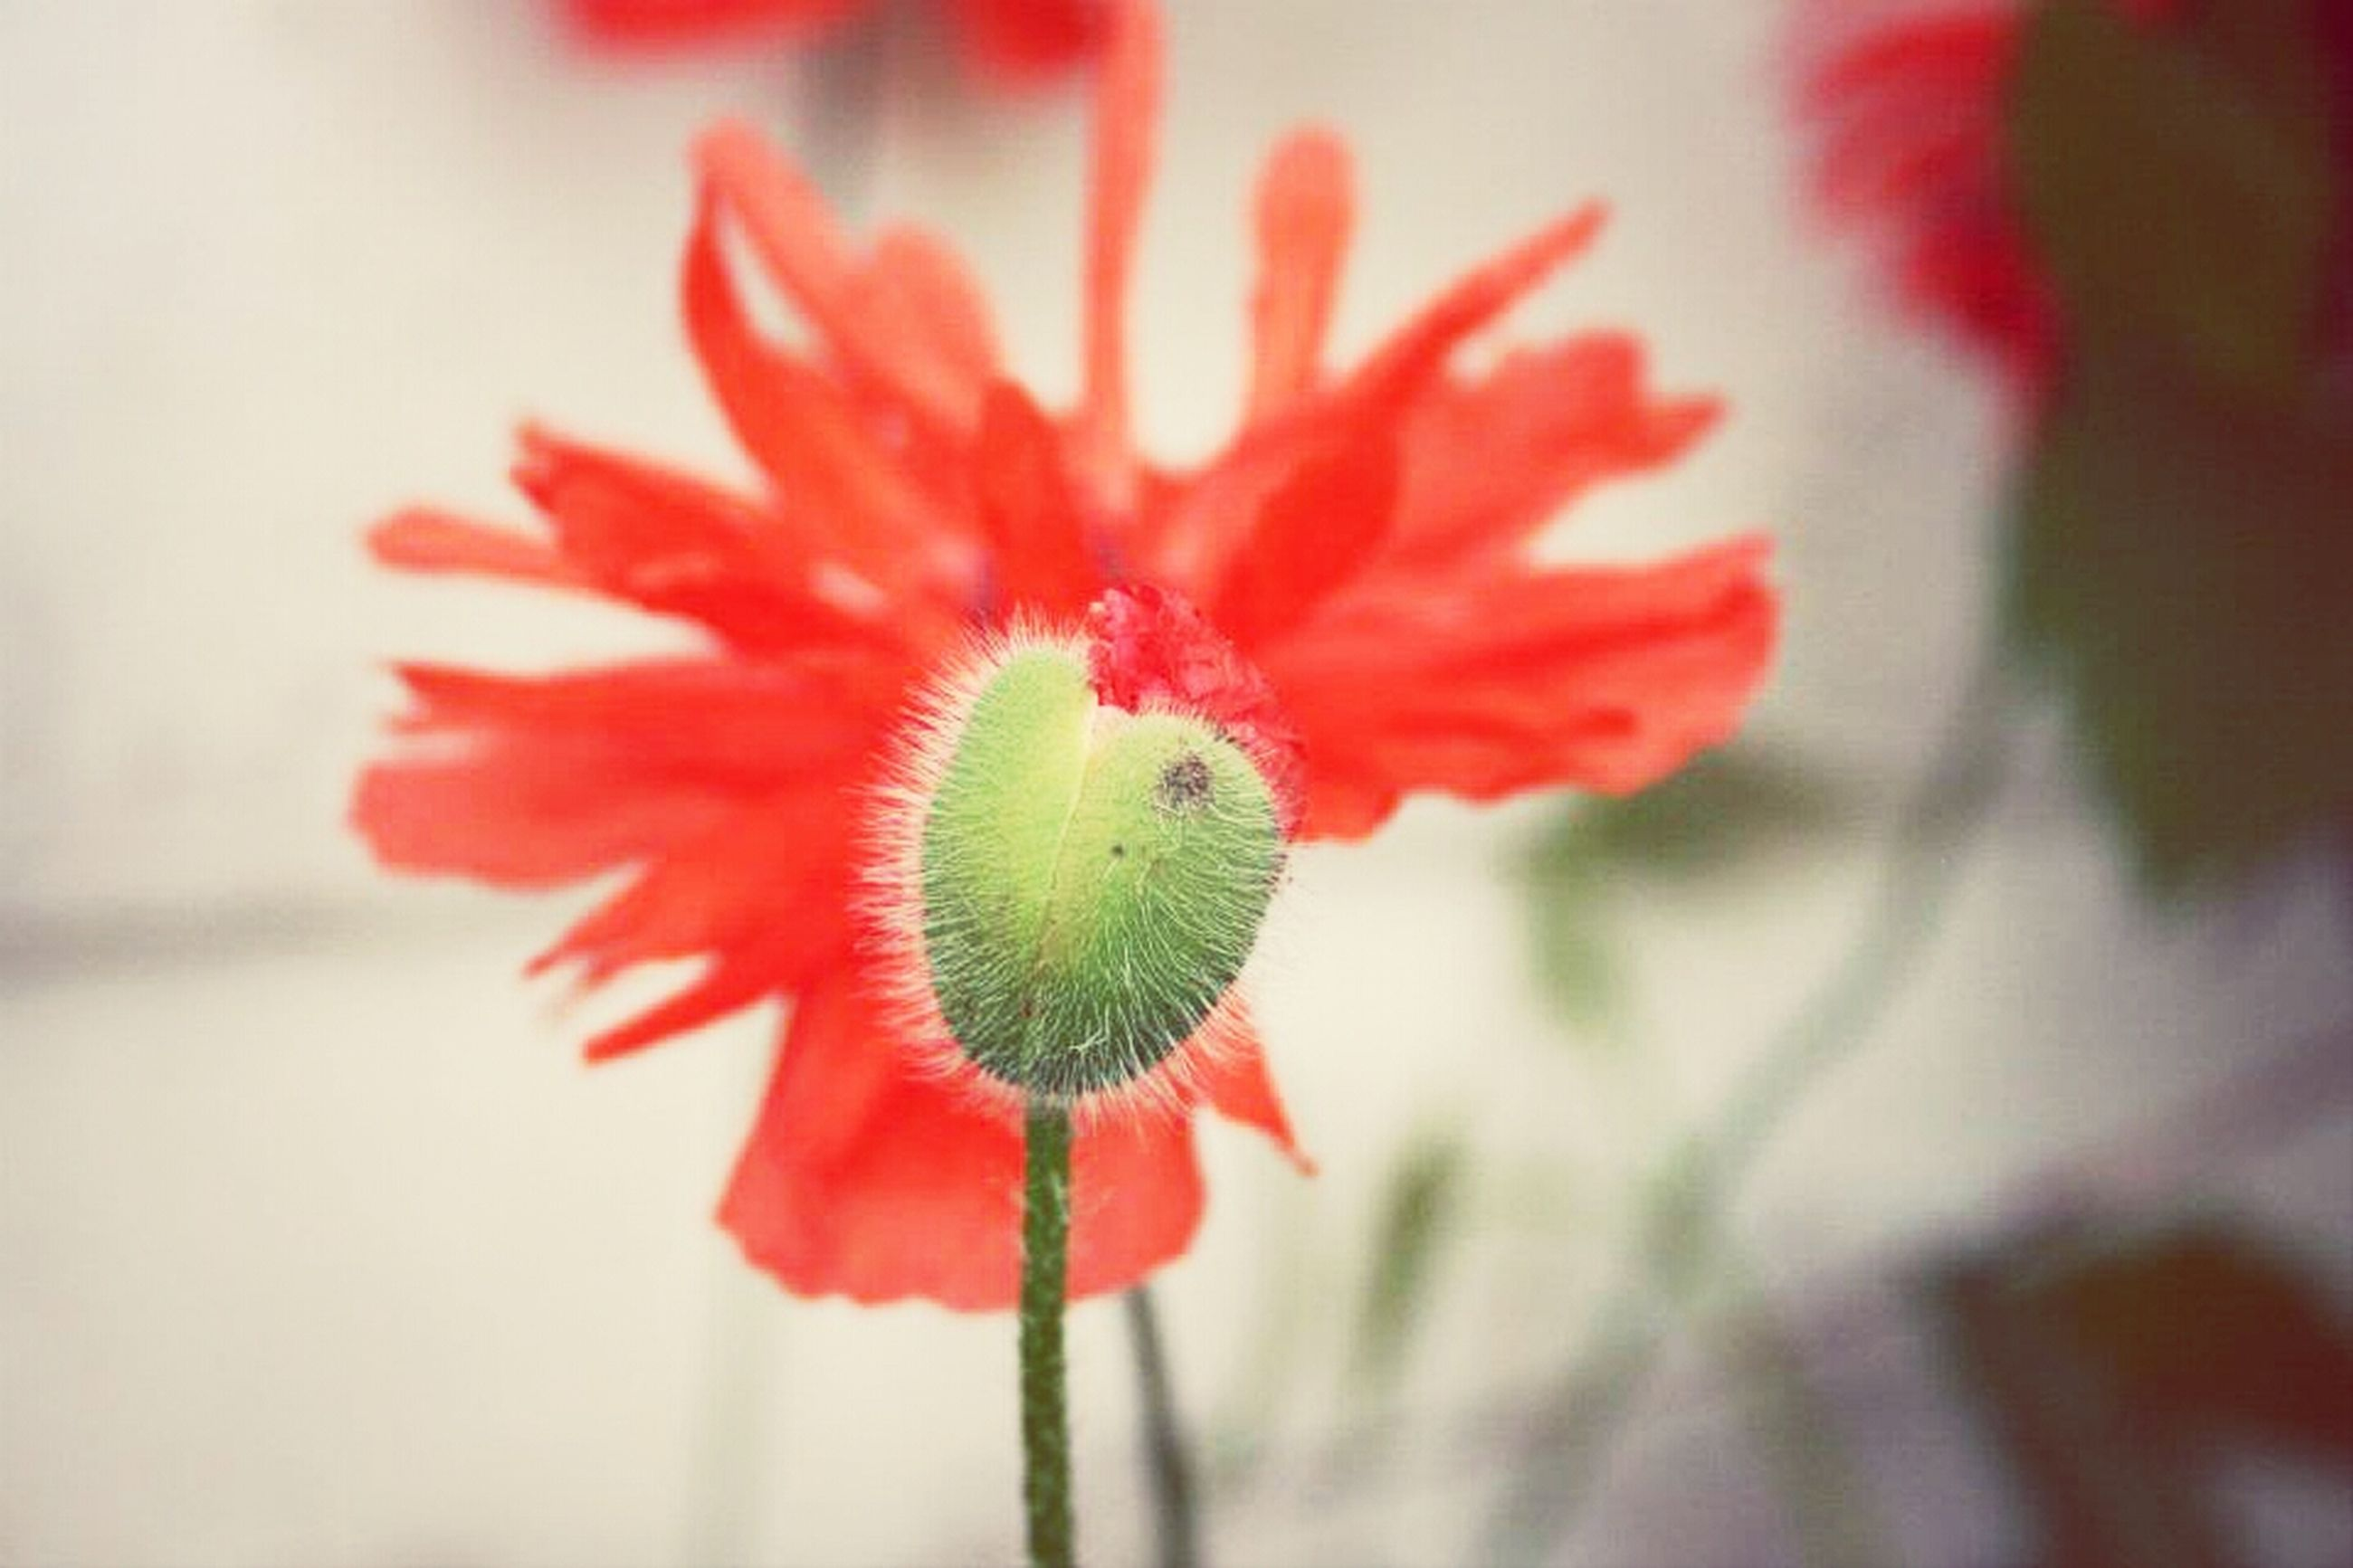 flower, freshness, flower head, petal, fragility, red, growth, close-up, beauty in nature, single flower, focus on foreground, plant, nature, blooming, stem, pollen, in bloom, bud, selective focus, botany